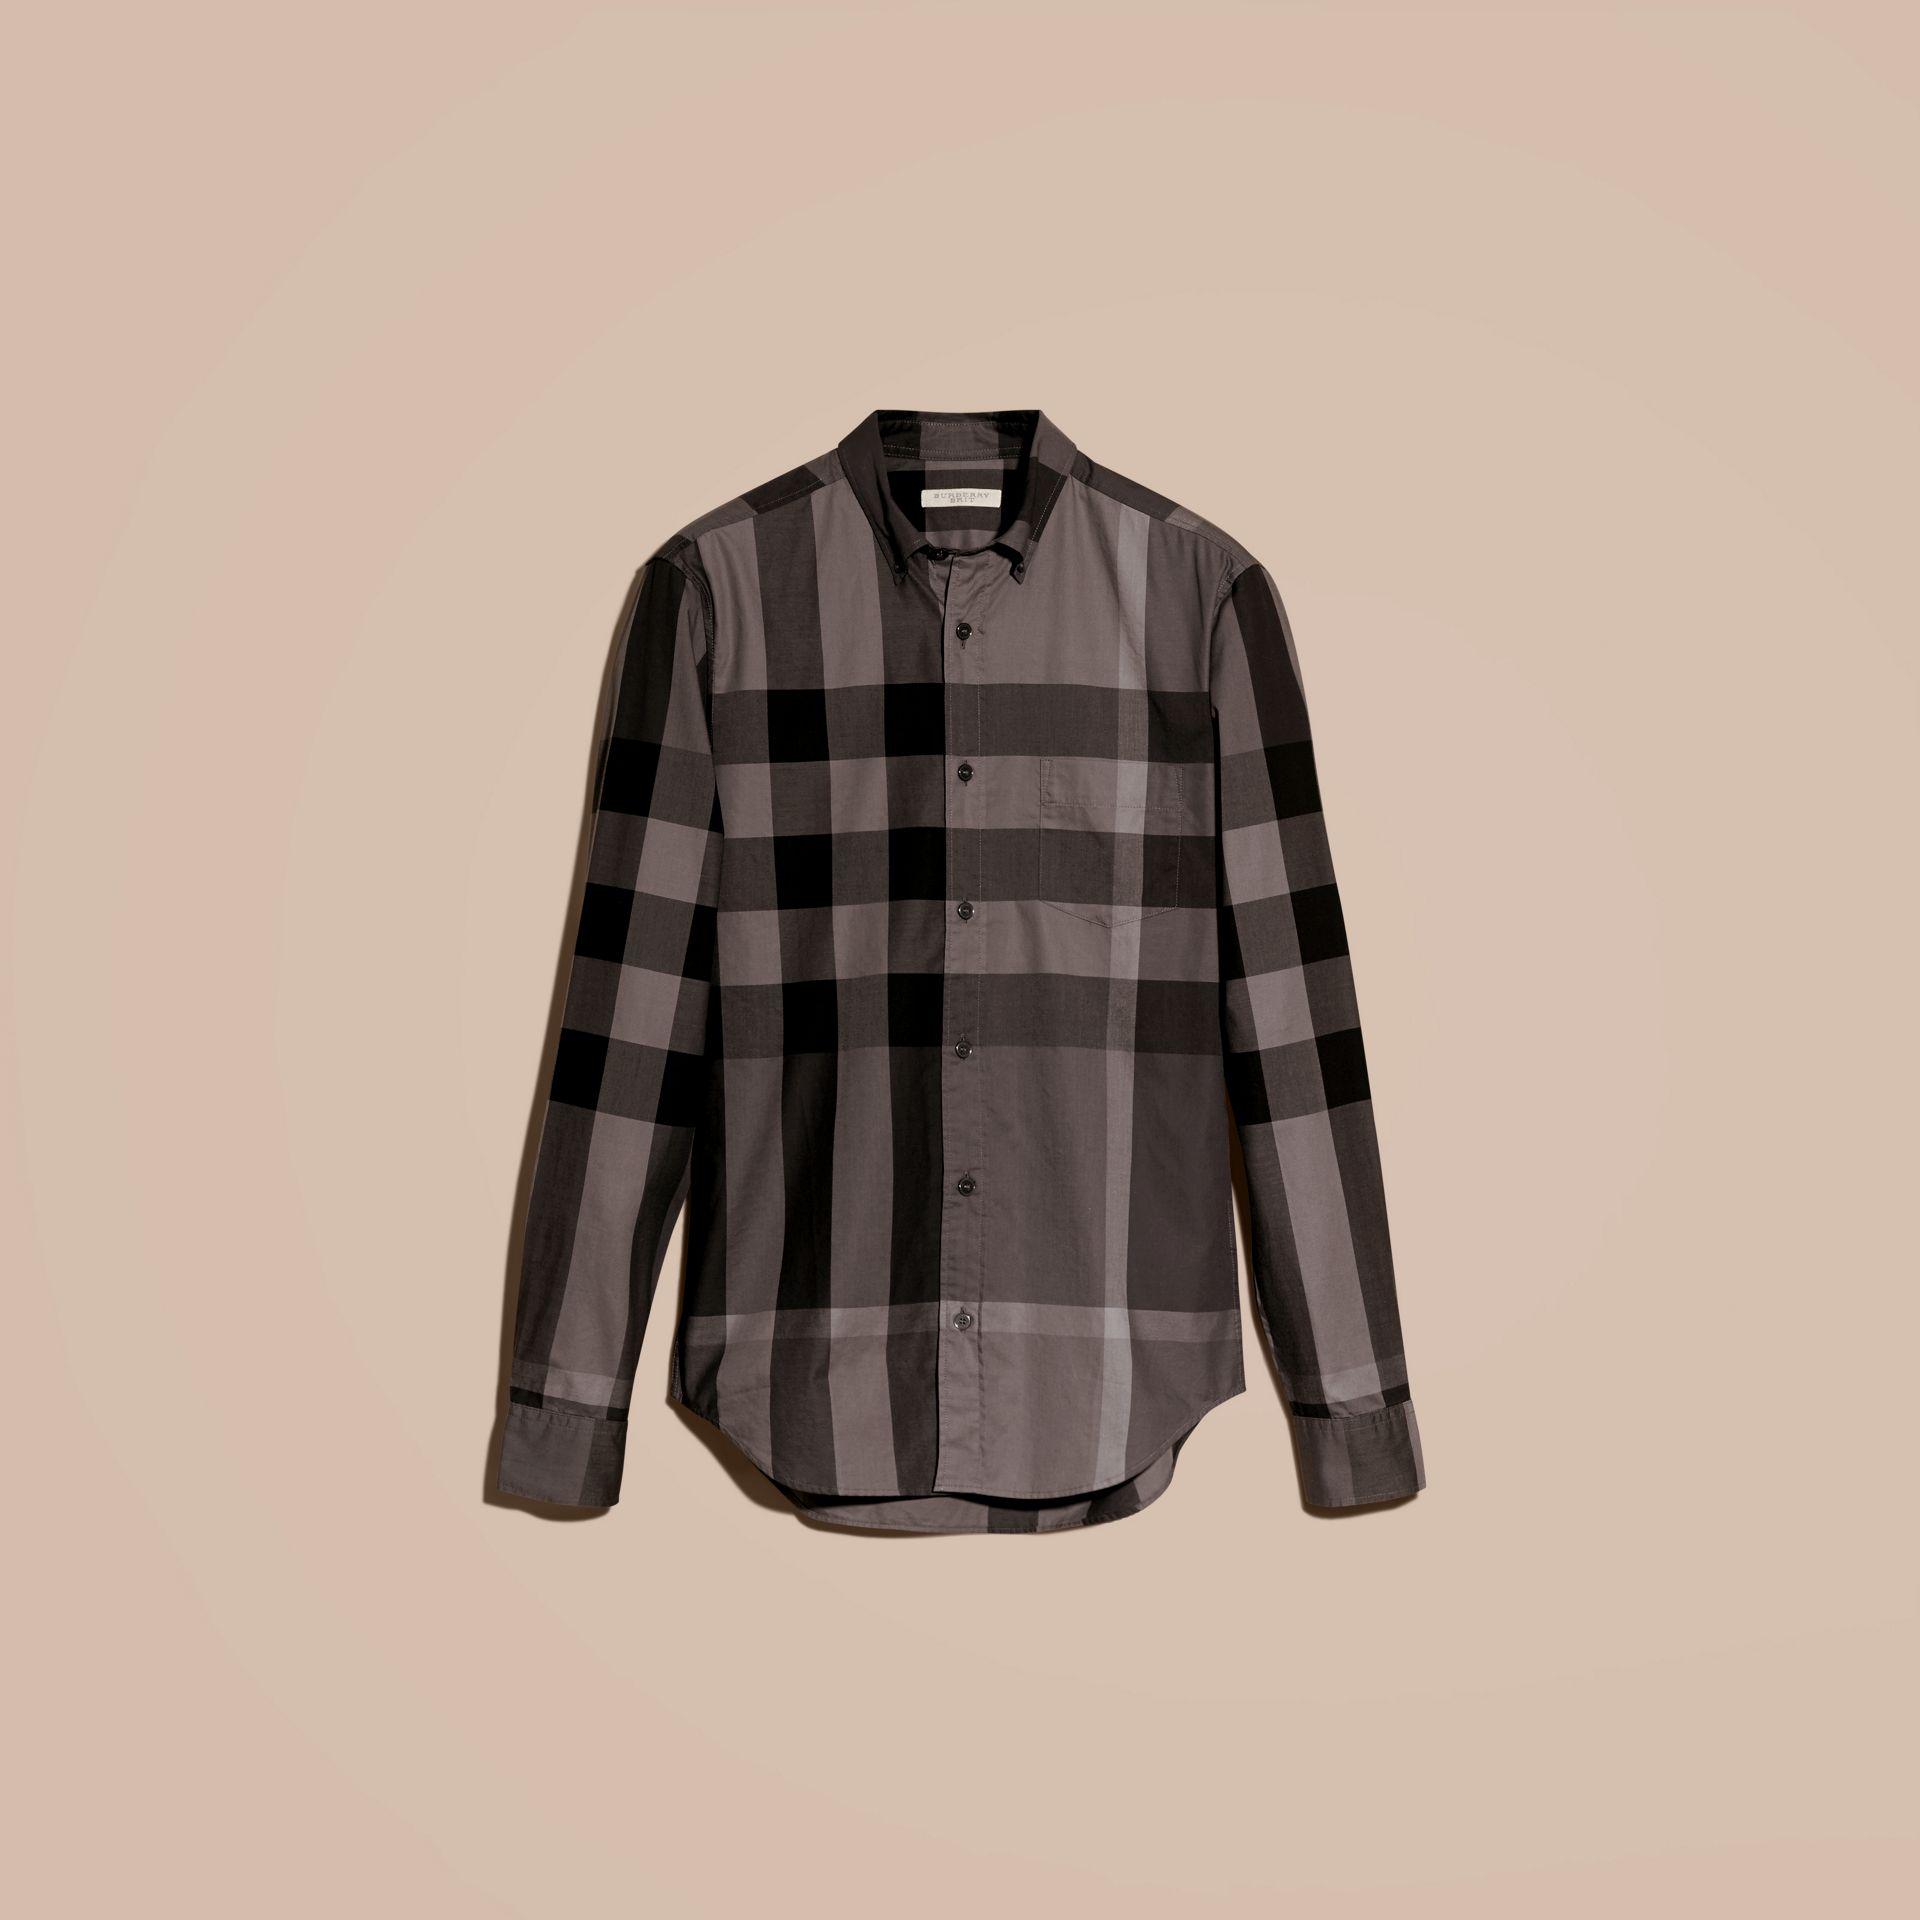 Charcoal Check Cotton Shirt Charcoal - gallery image 4